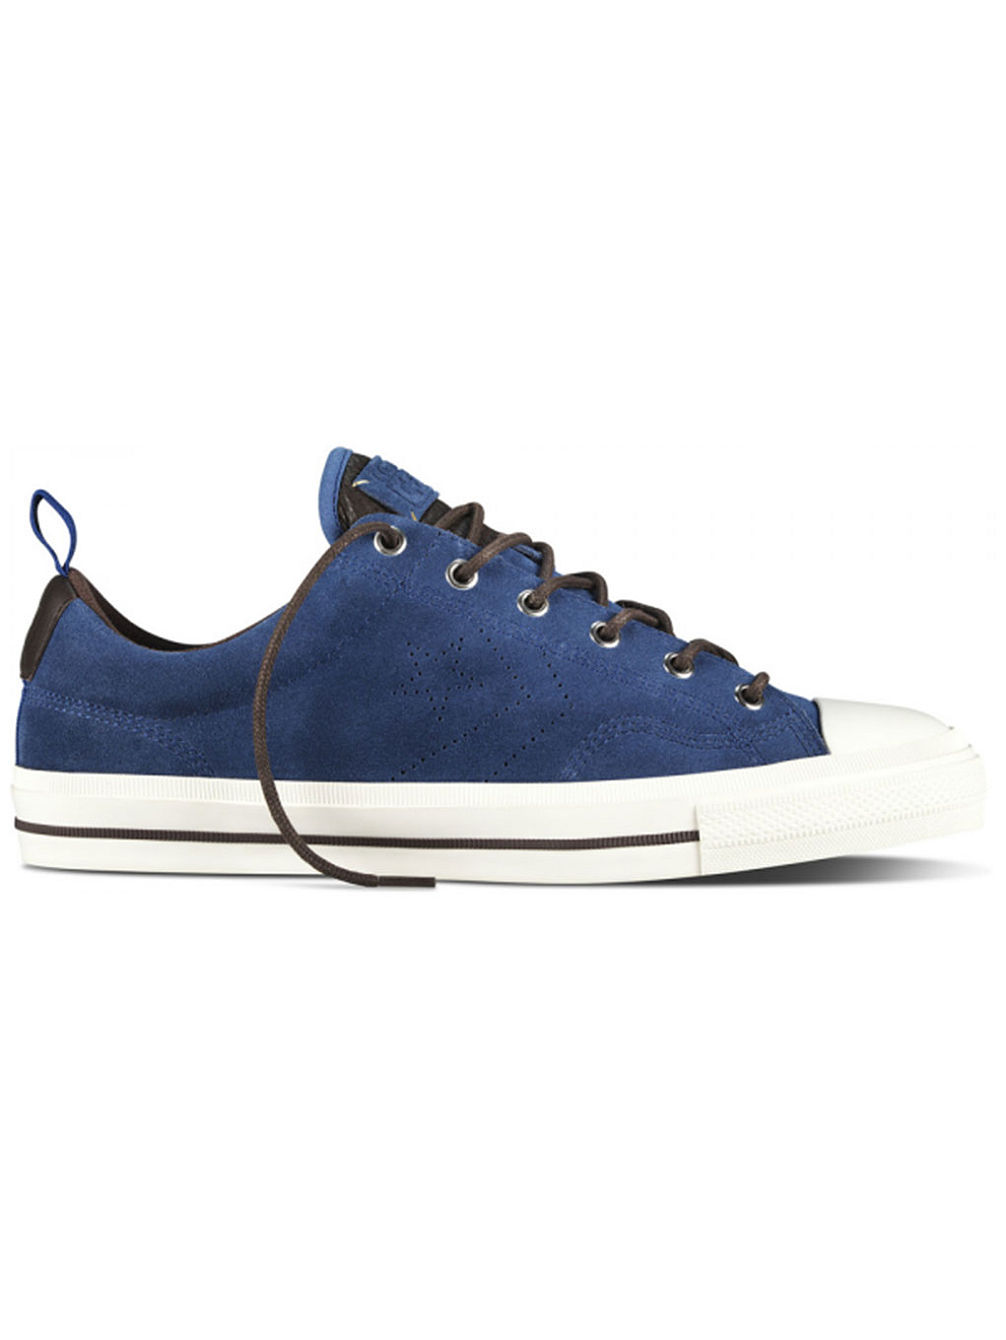 Converse CONS Star Player Sneakers - converse - blue-tomato.com